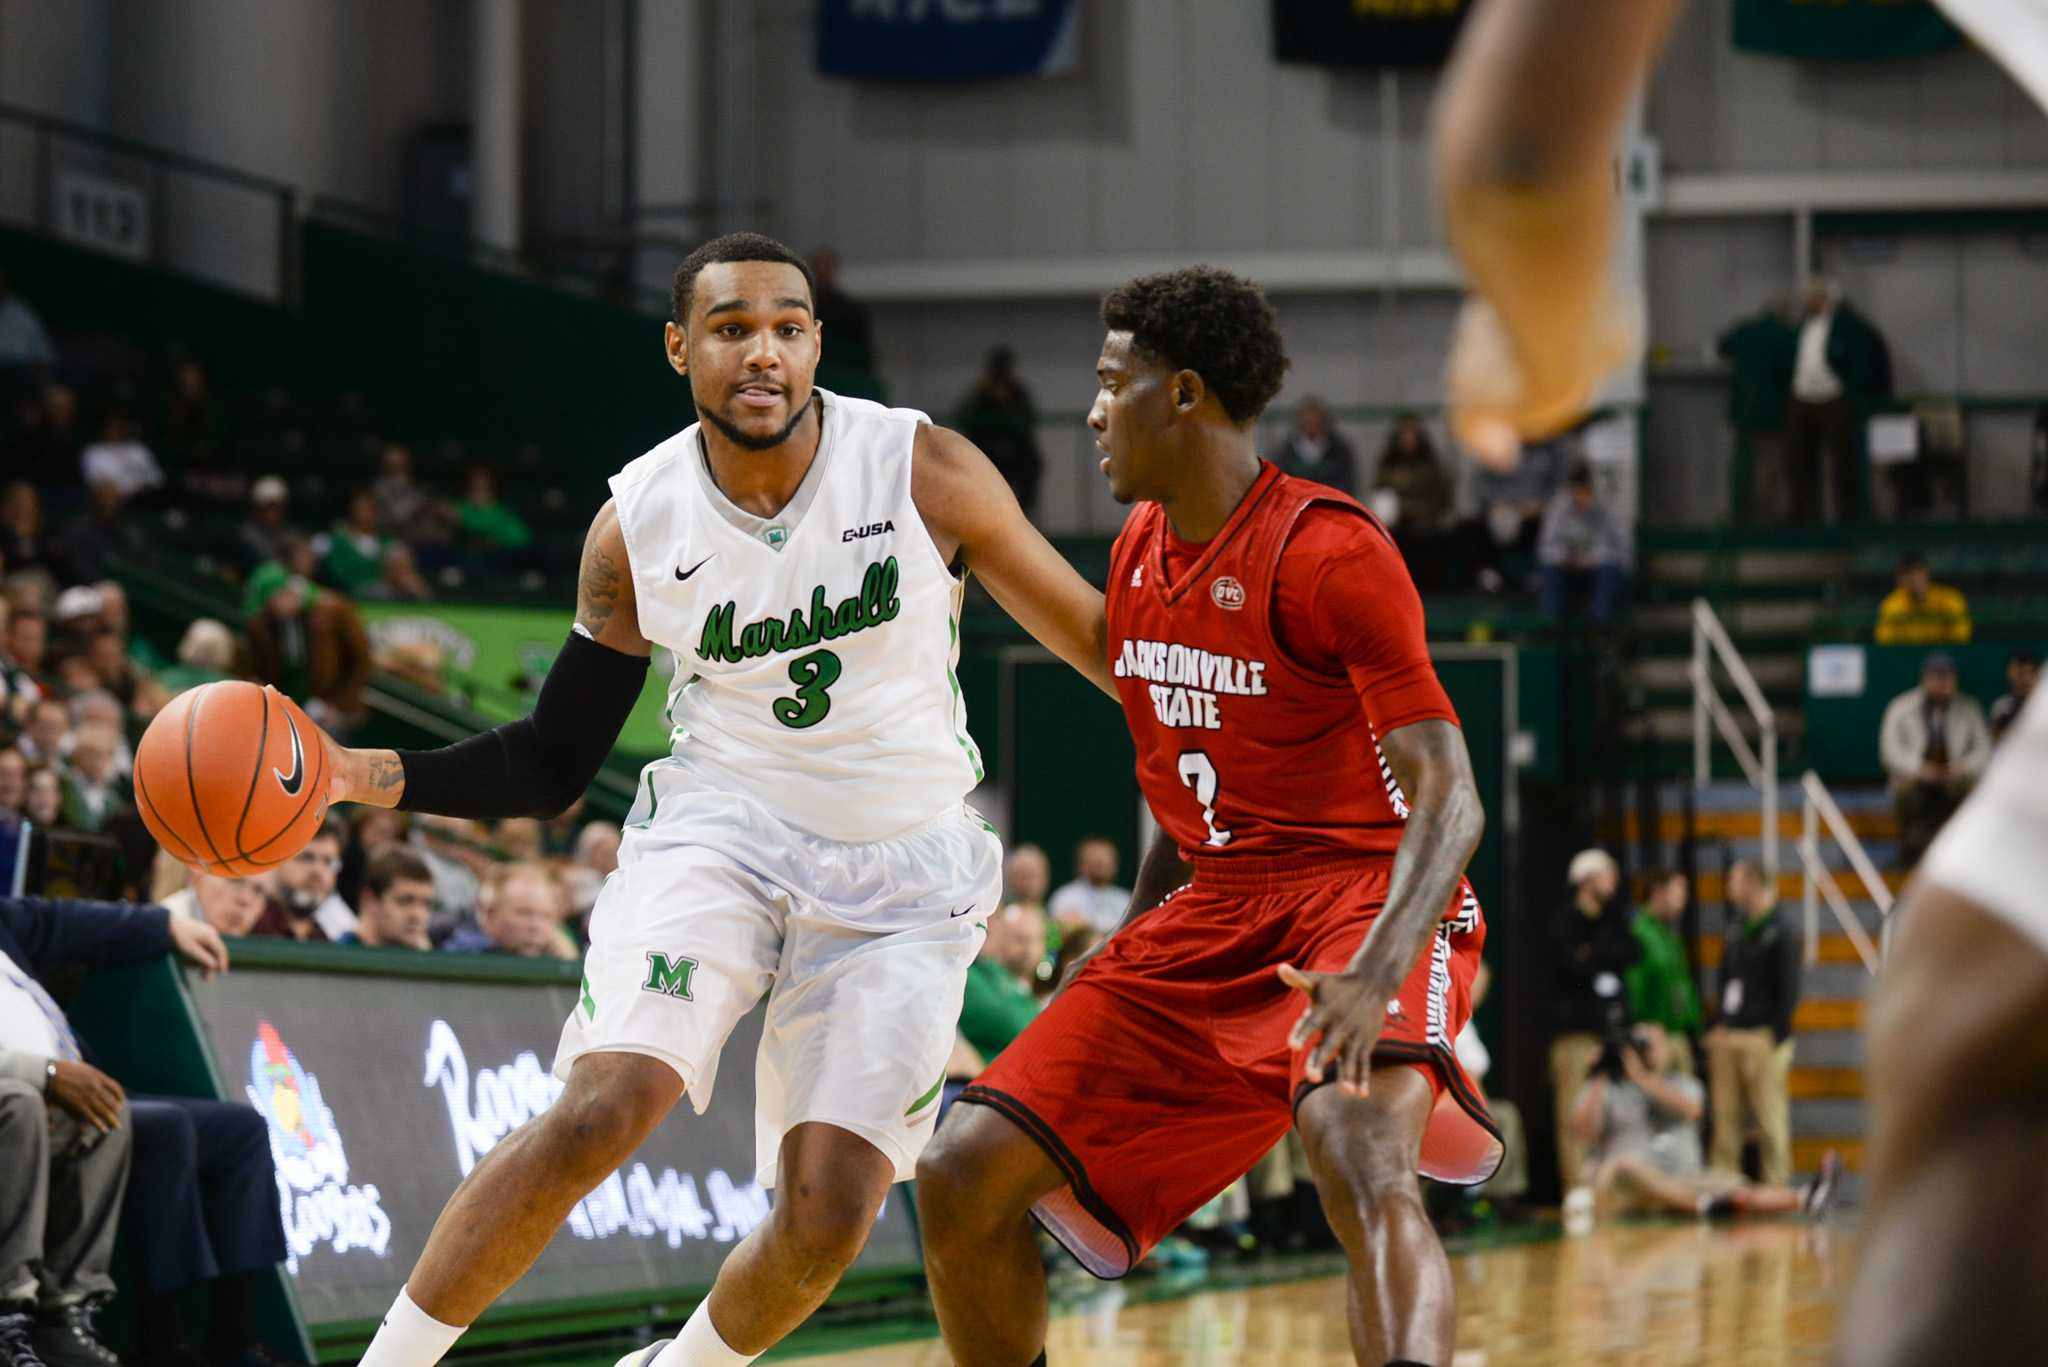 Marshall men's basketball defeats Jacksonville State 74-55 on Friday at the Cam Henderson Center.